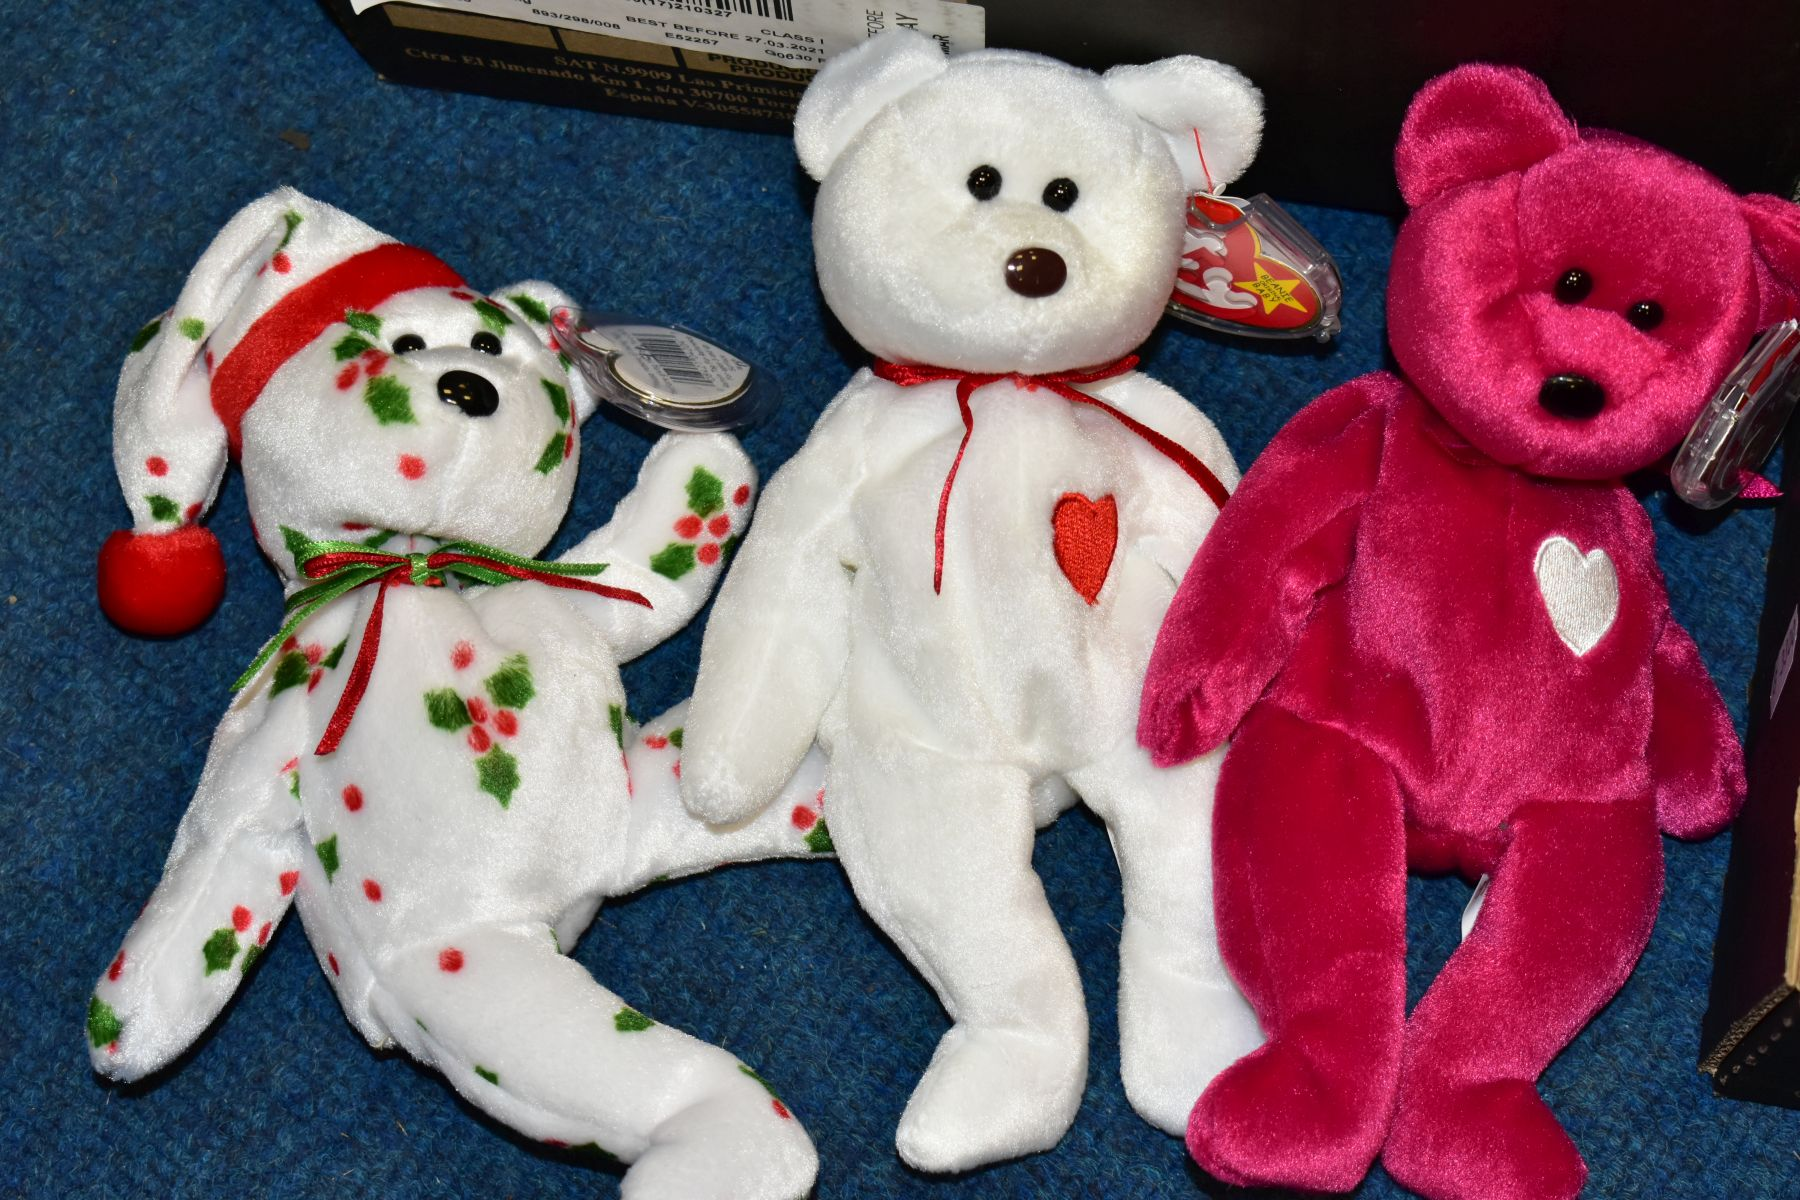 TWO BOXES OF ASSORTED TY BEANIE BABIES, majority with tags, includes Platinum Membership case, - Image 3 of 7